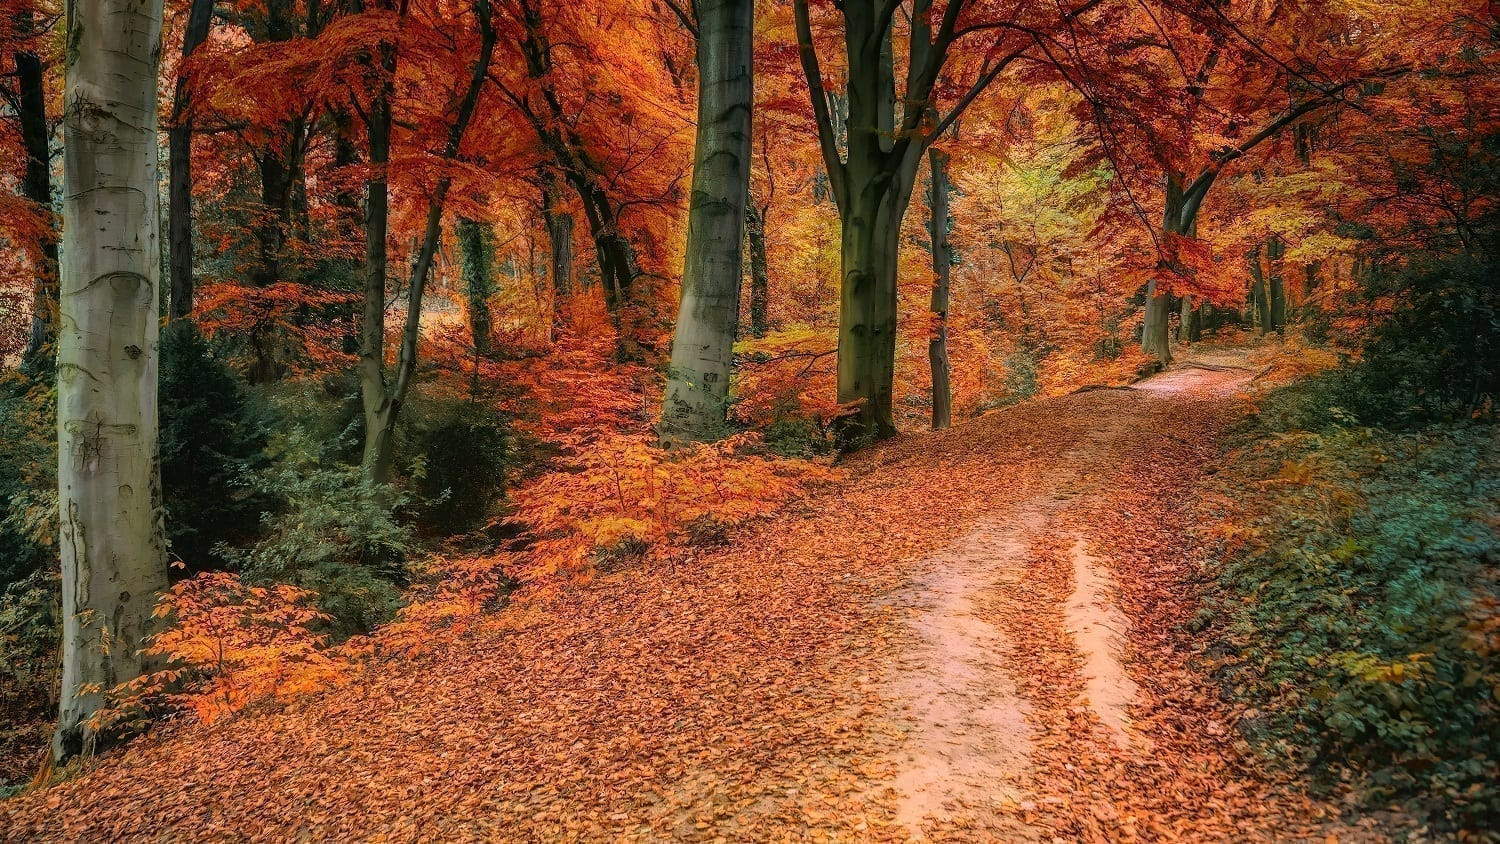 Autumn forest with leave covered path, photo credit: Johannes Plenio at Pexels